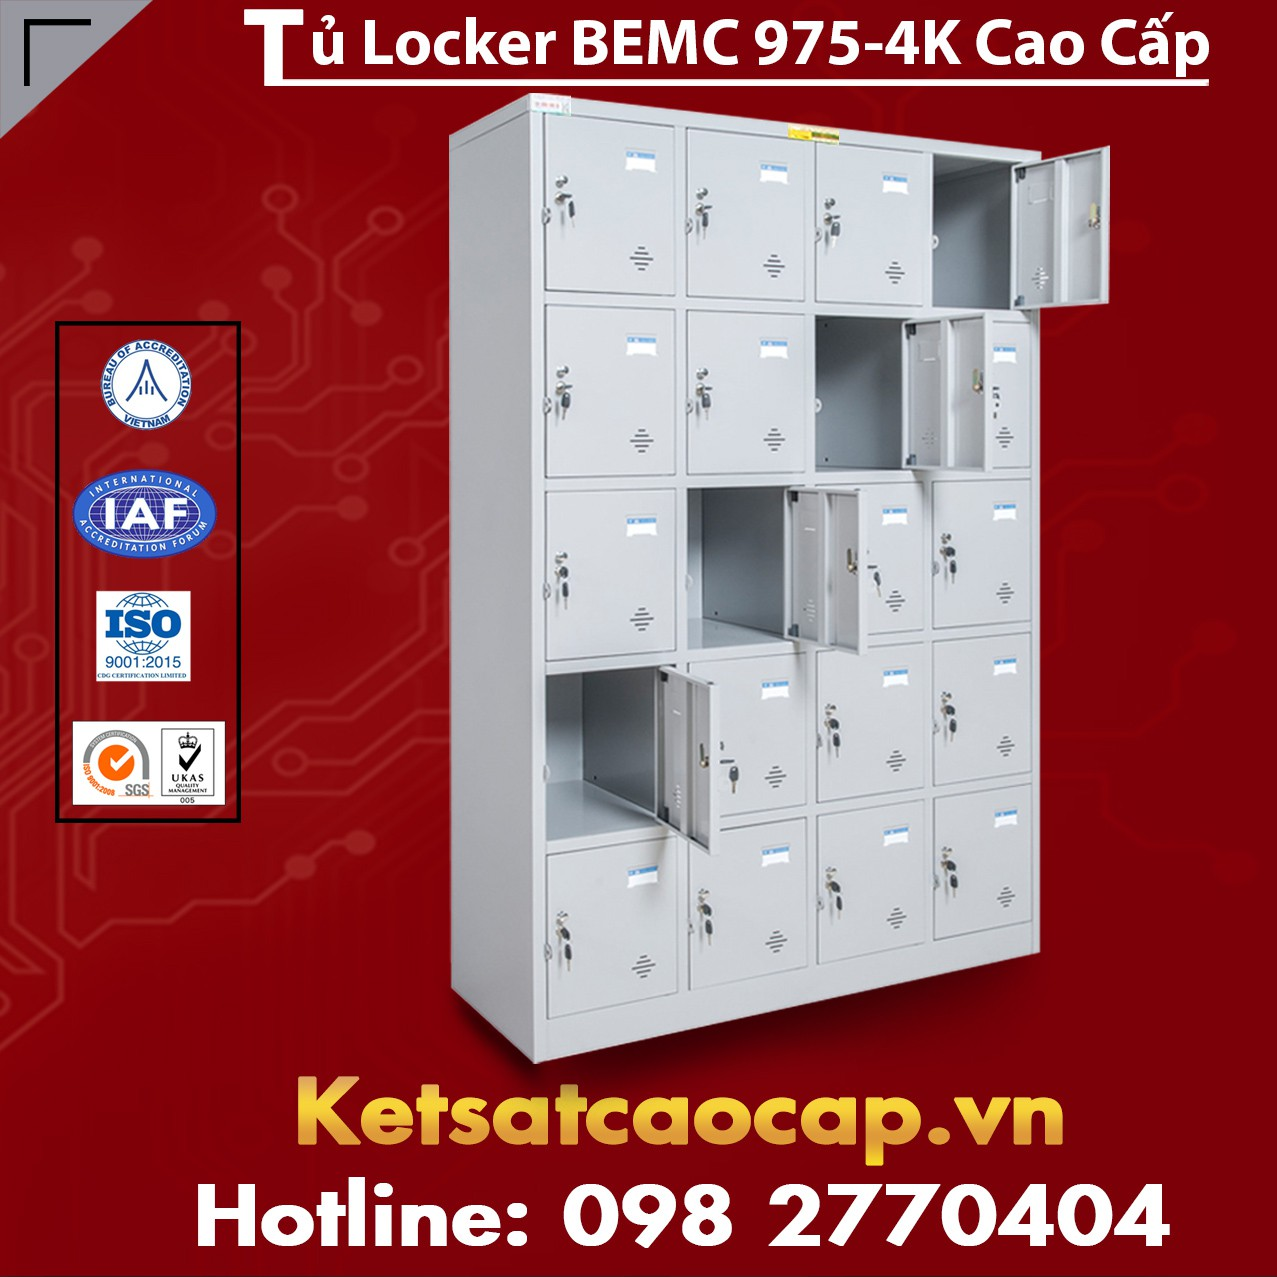 Tủ Locker BEMC 975-4K